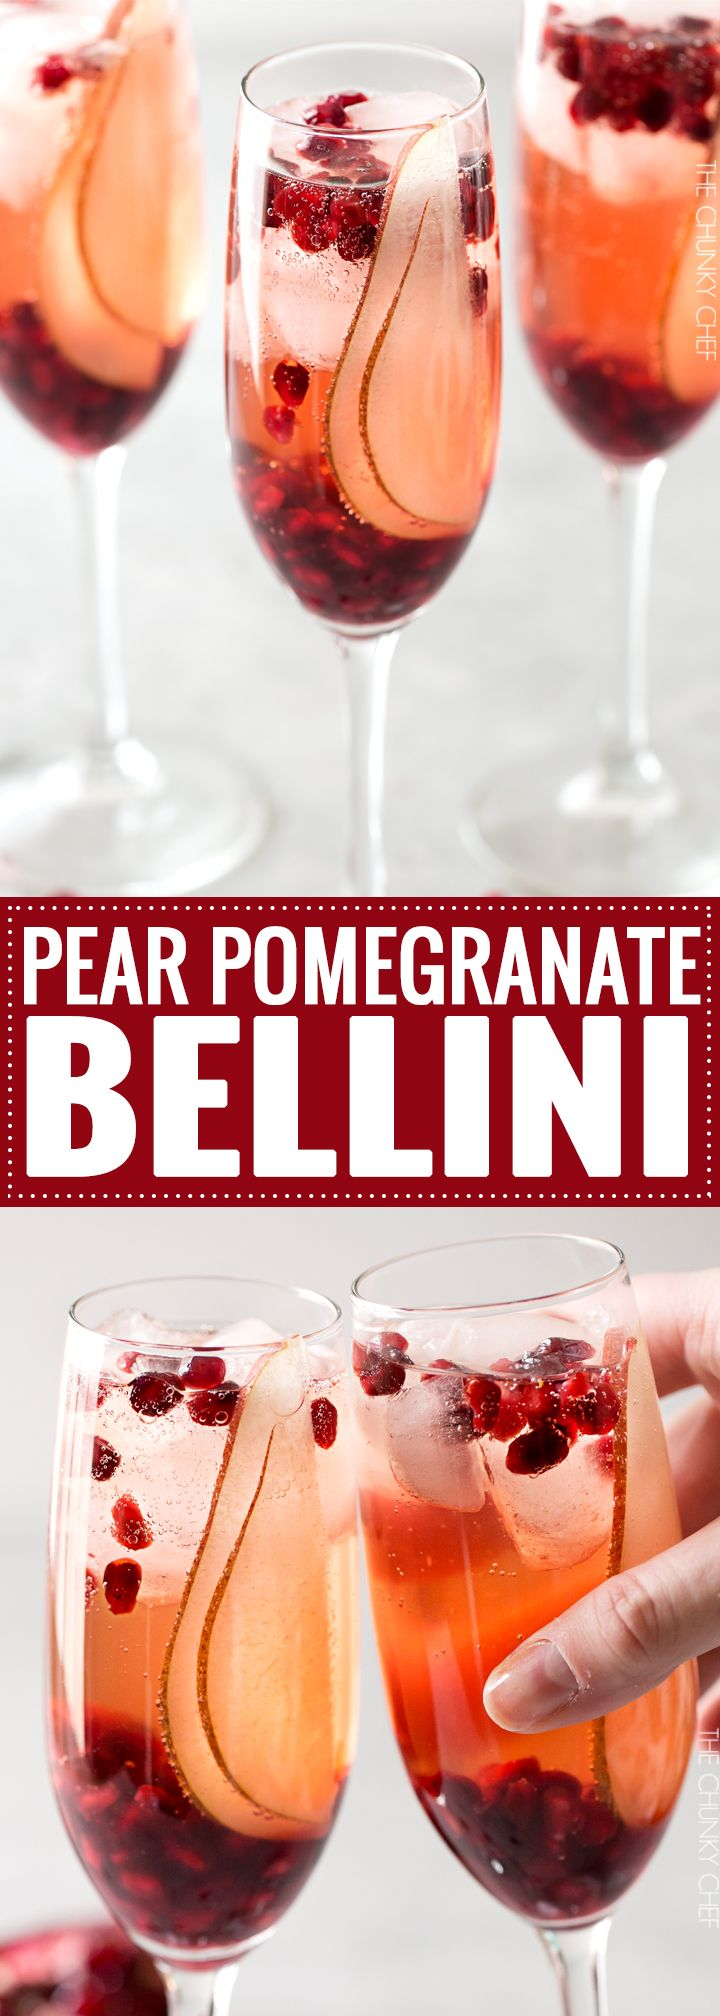 Pear Pomegranate Bellini   A delightful combination of Prosecco and pear brandy create this light, bubbly, and elegant Bellini! As pretty as it is delicious, it's just the drink you need for your next party or date night!   http://thechunkychef.com